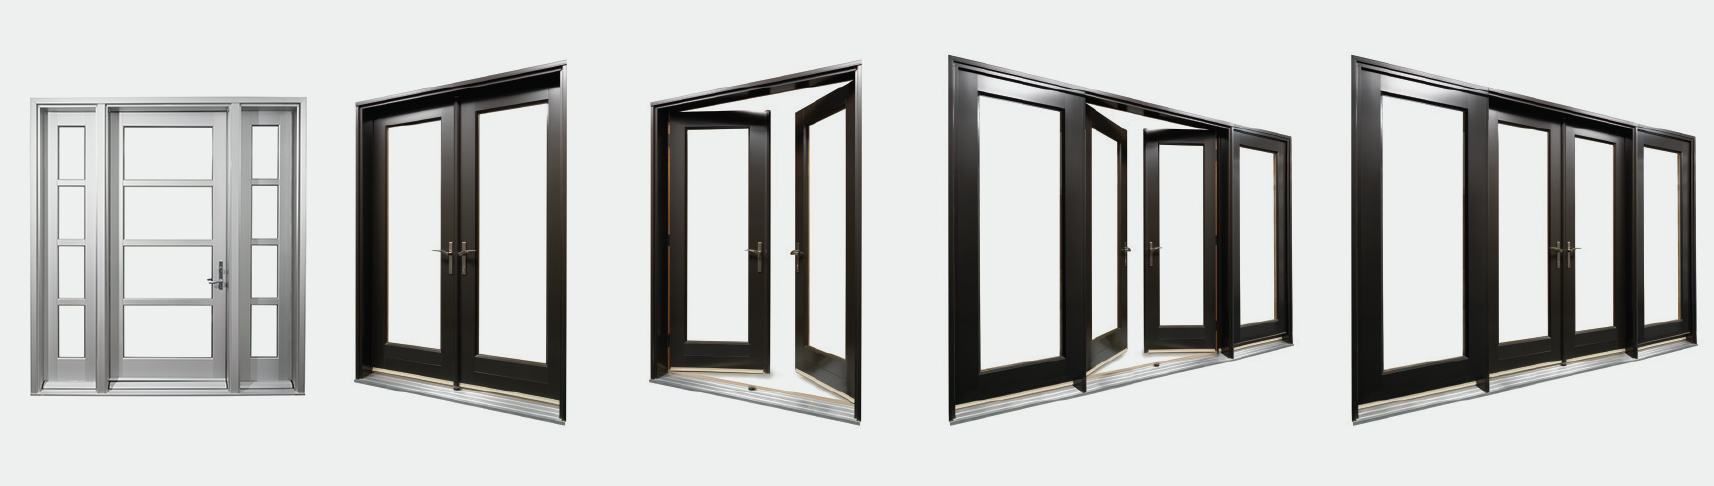 4 different lux aluminum clad door configurations & Aluminum Doors | Clad Exterior | Lux Windows \u0026 Doors Pezcame.Com